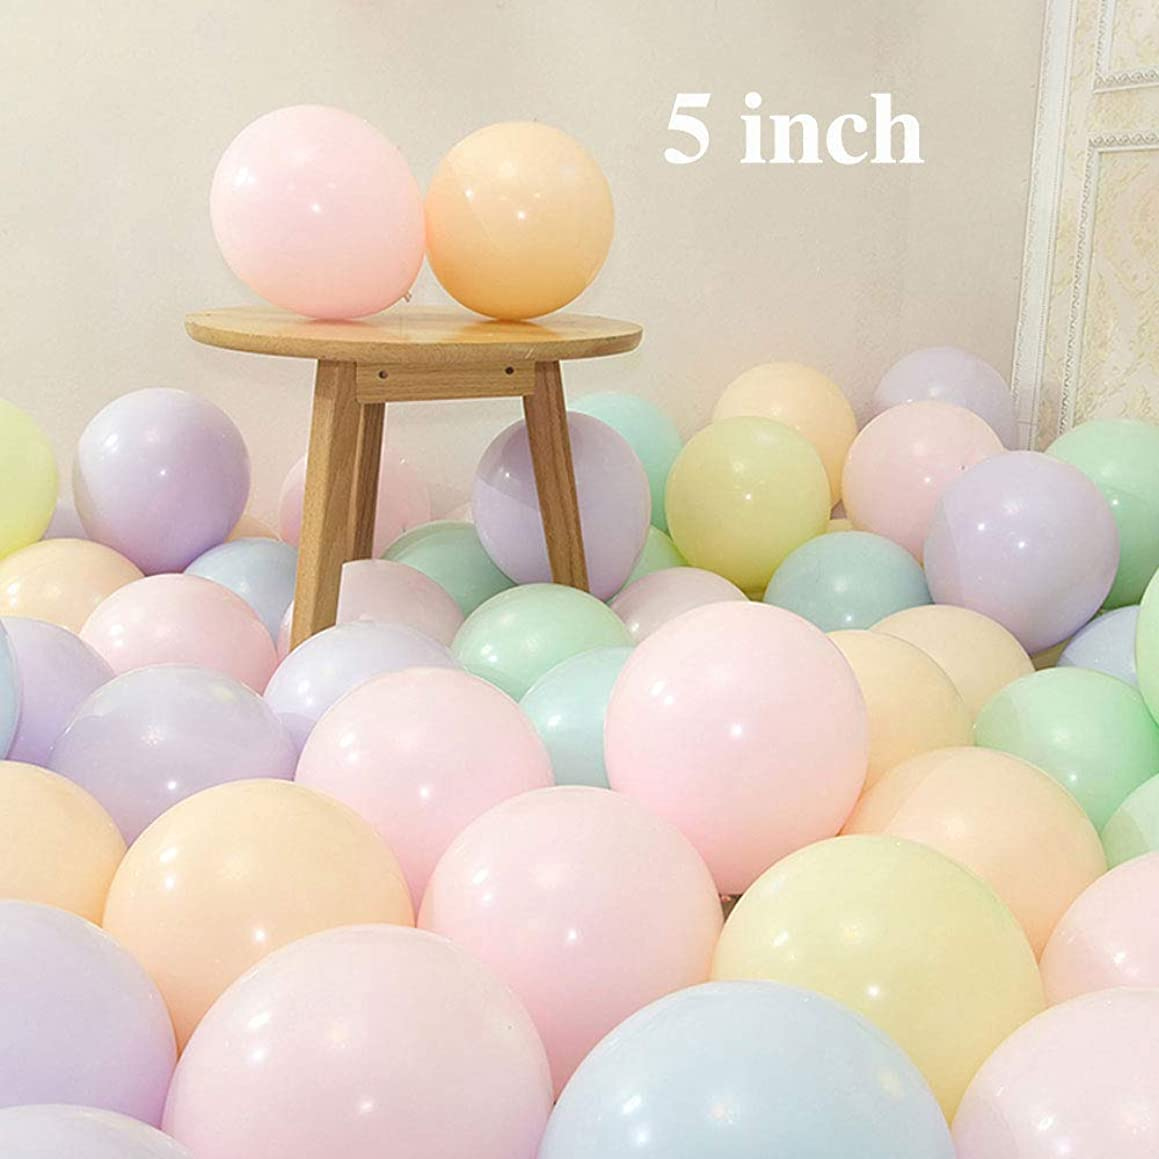 YESON 5 inch Latex Balloons Mini Assorted Pastel Macaron Colored Party Balloons,Pack of 200